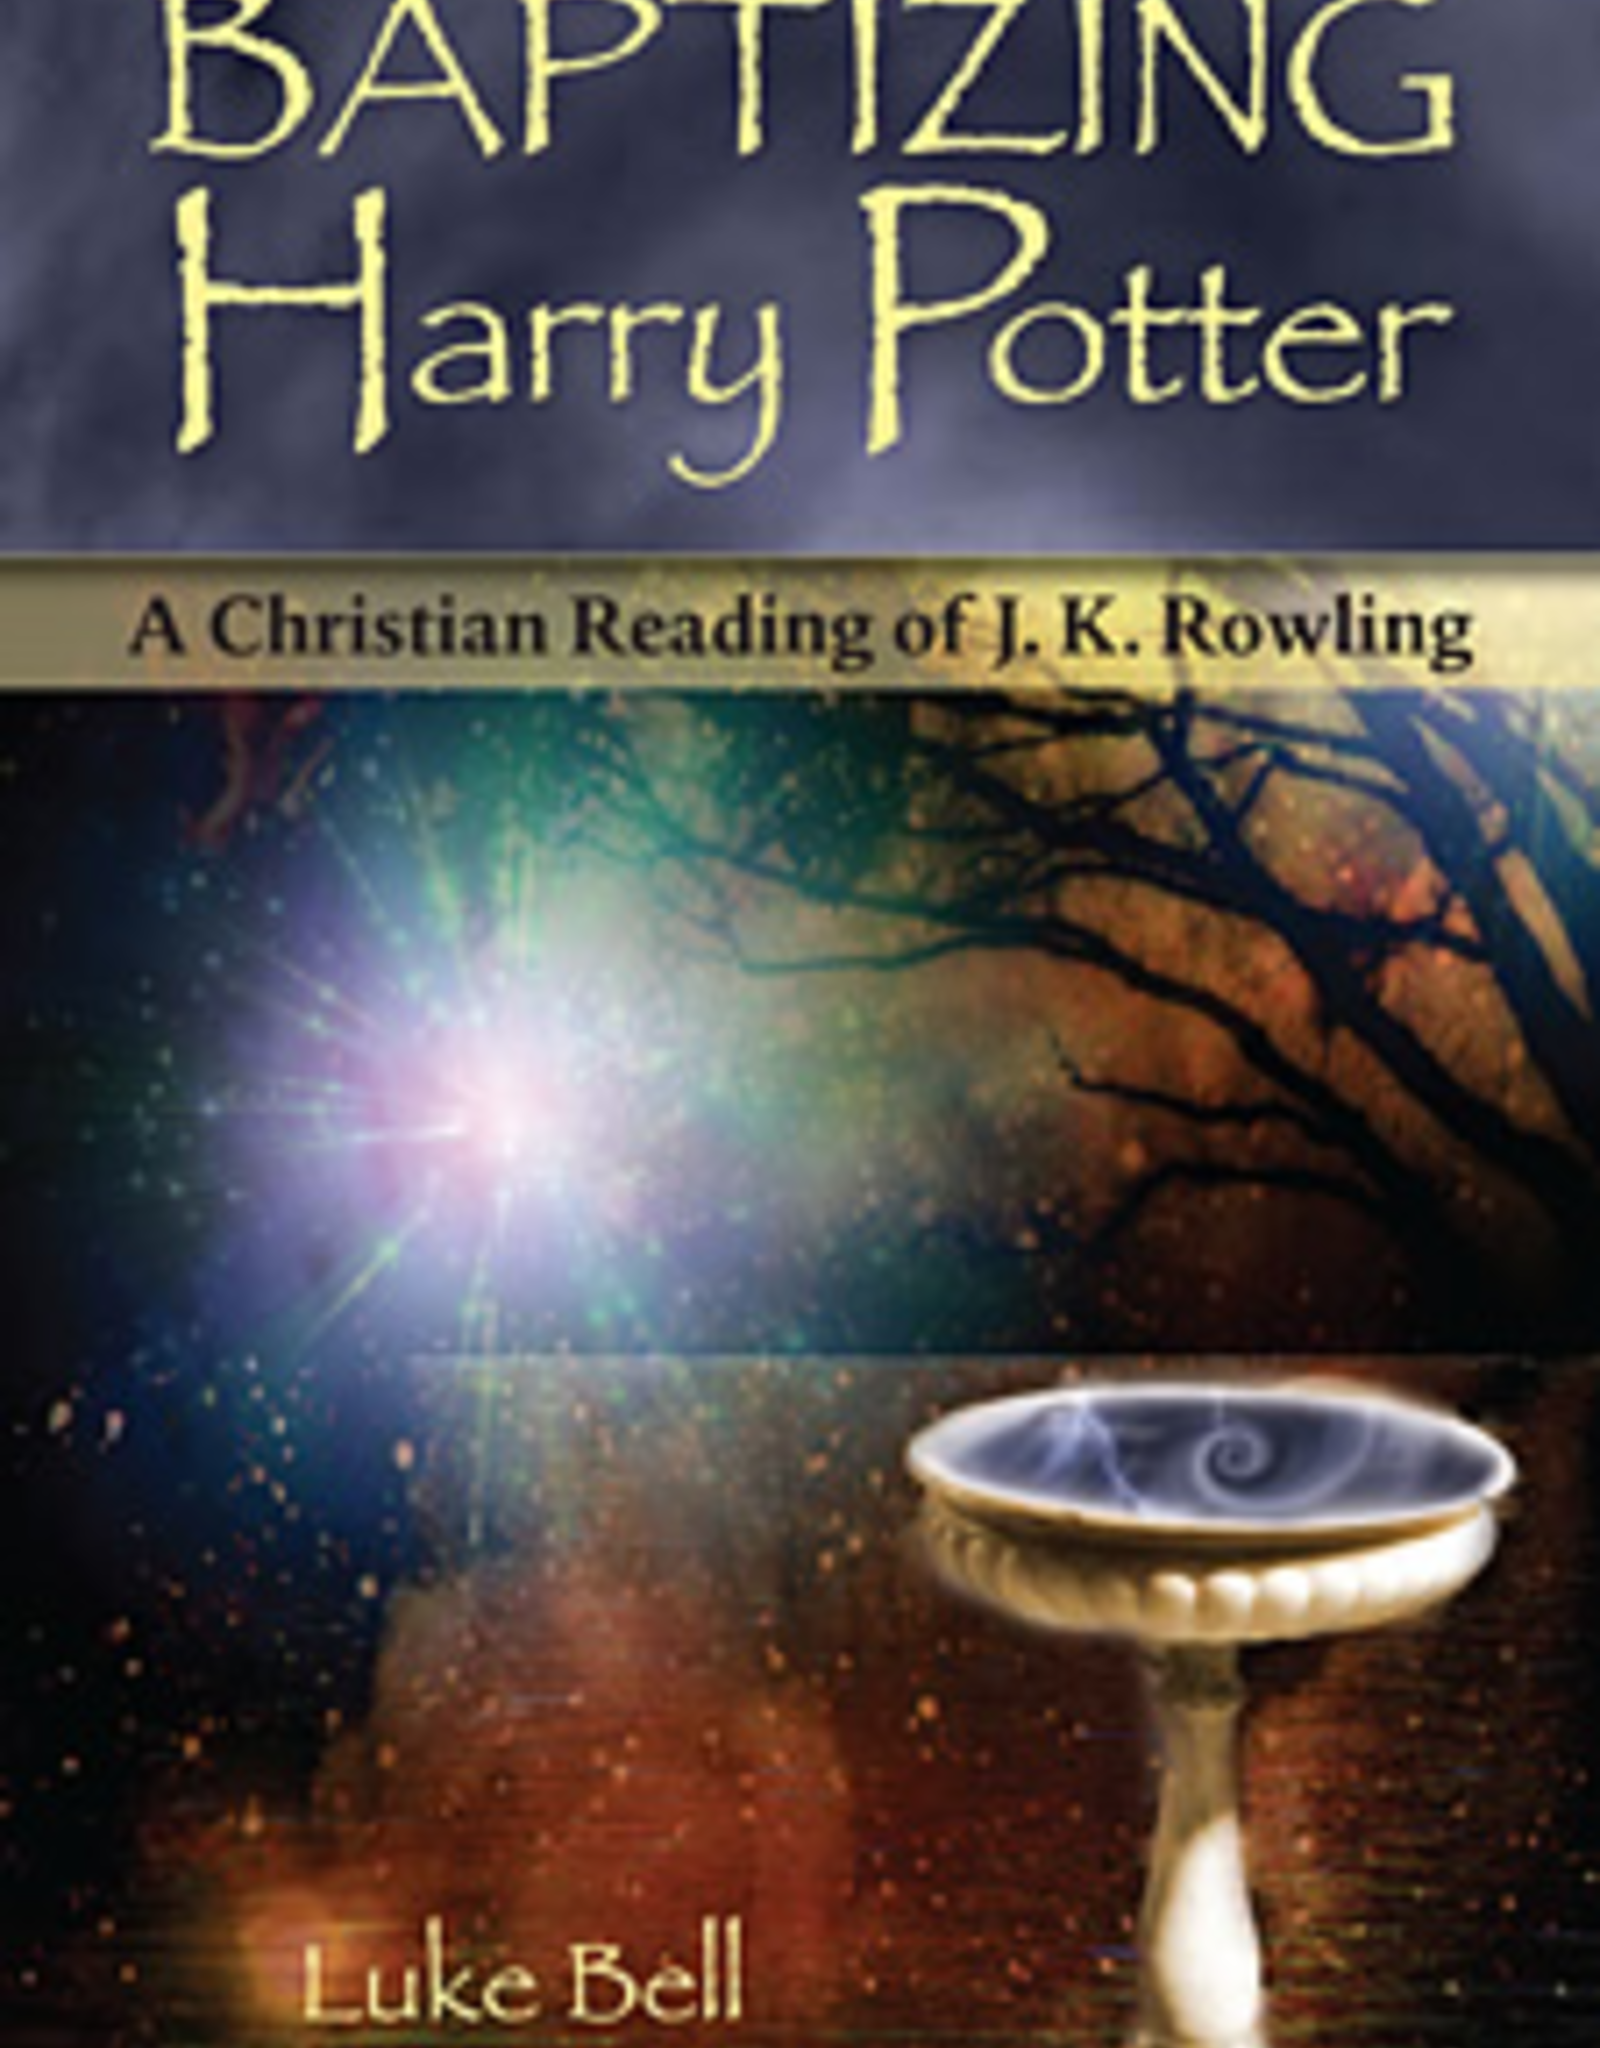 Paulist Press Baptizing Harry Potter: A Christian Reading of J.K. Rowling, by Luke Bell (paperback)